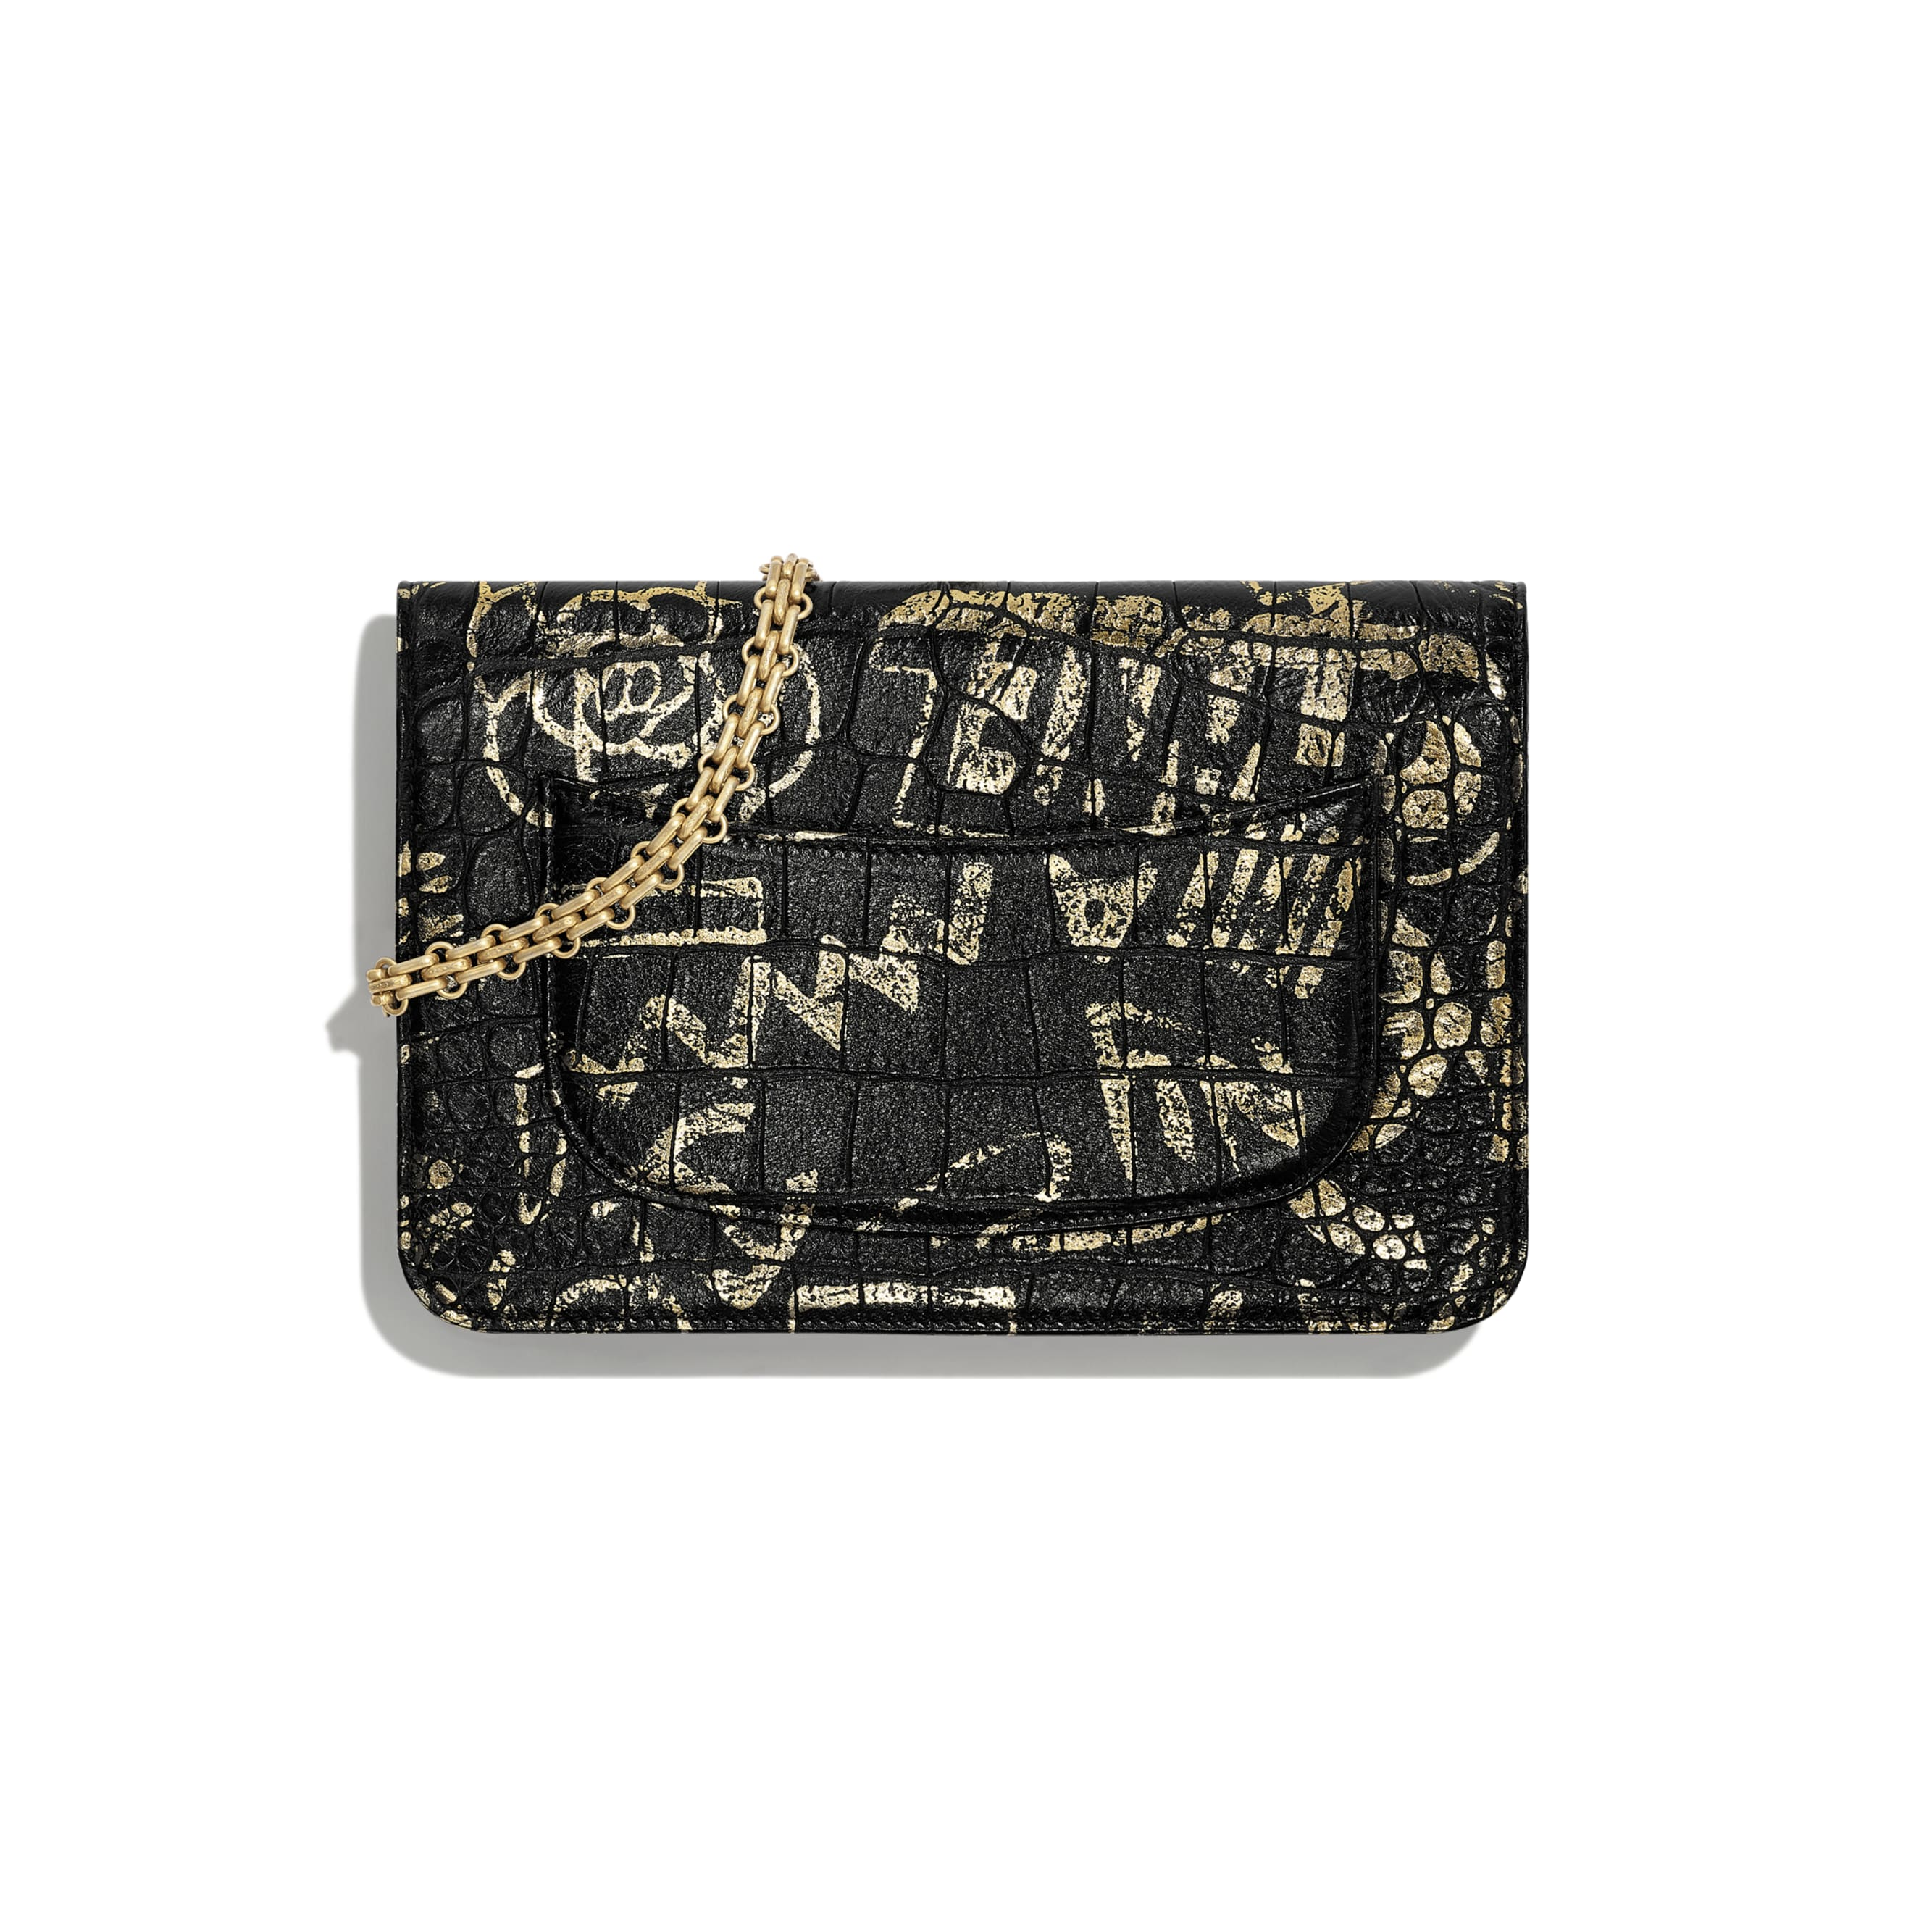 2.55 Wallet on Chain - Black & Gold - Crocodile Embossed Printed Leather & Gold-Tone Metal - Alternative view - see standard sized version